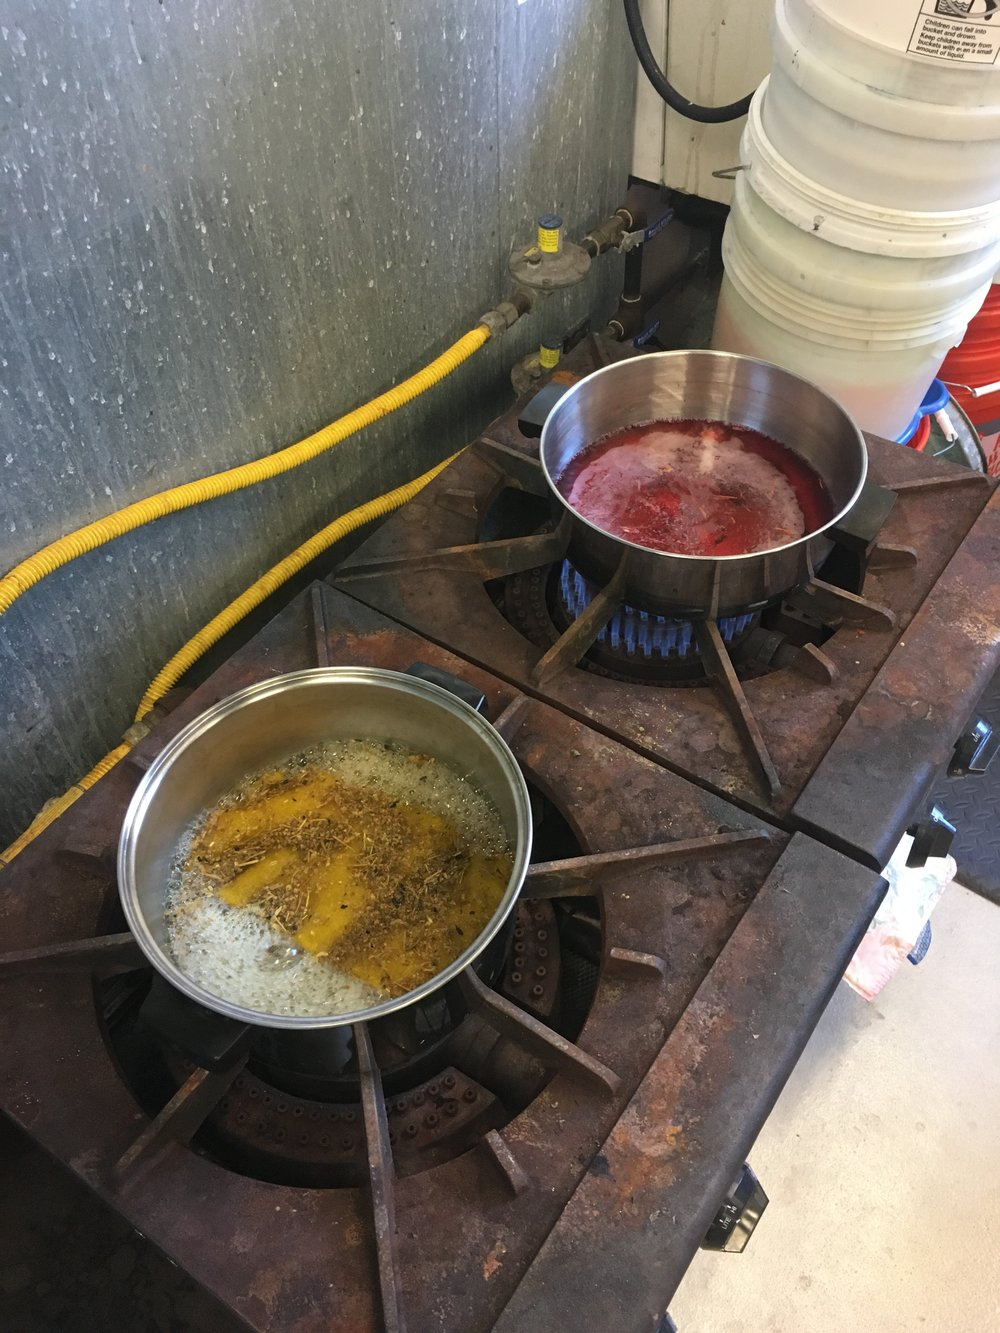 weld and madder on the stove